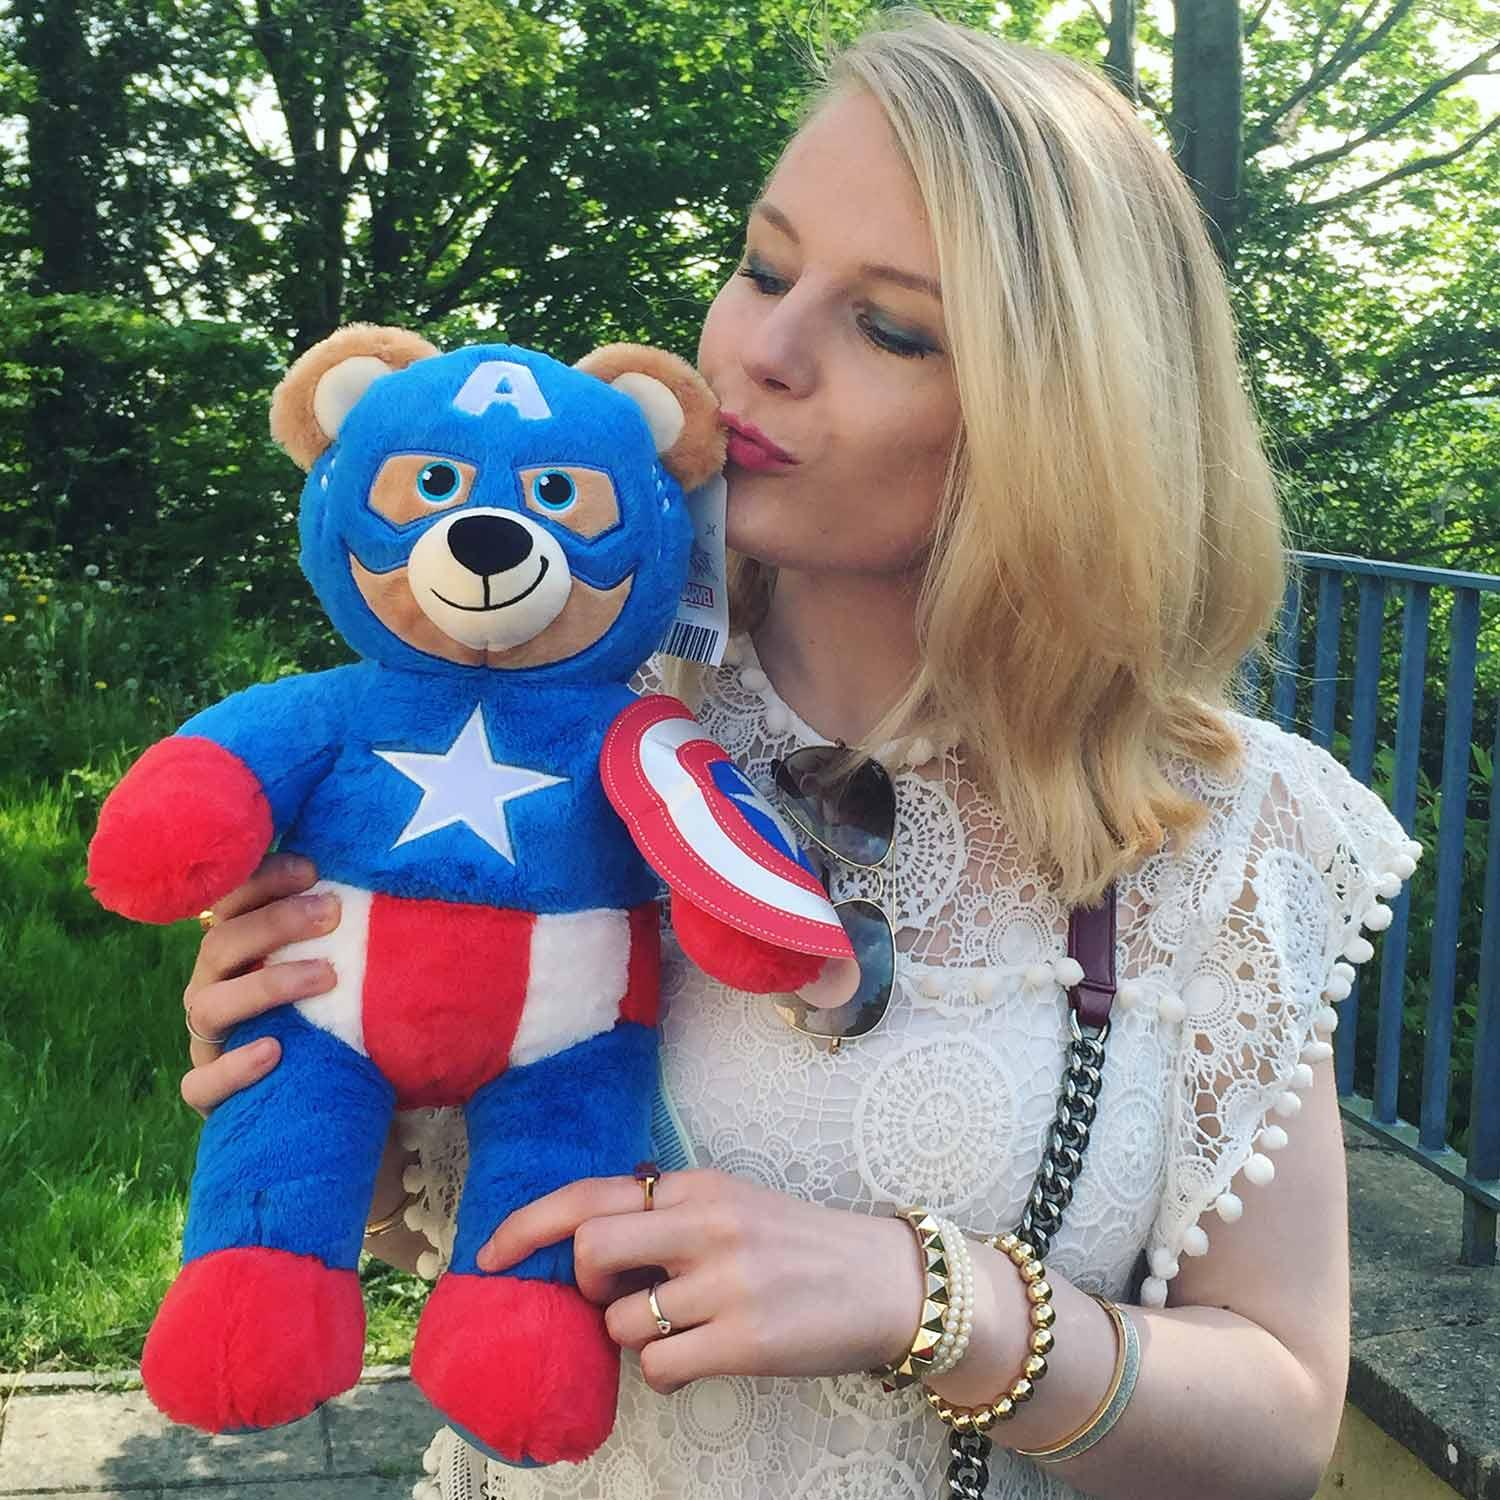 lorna-burford-captain-america-bear-chris-evans